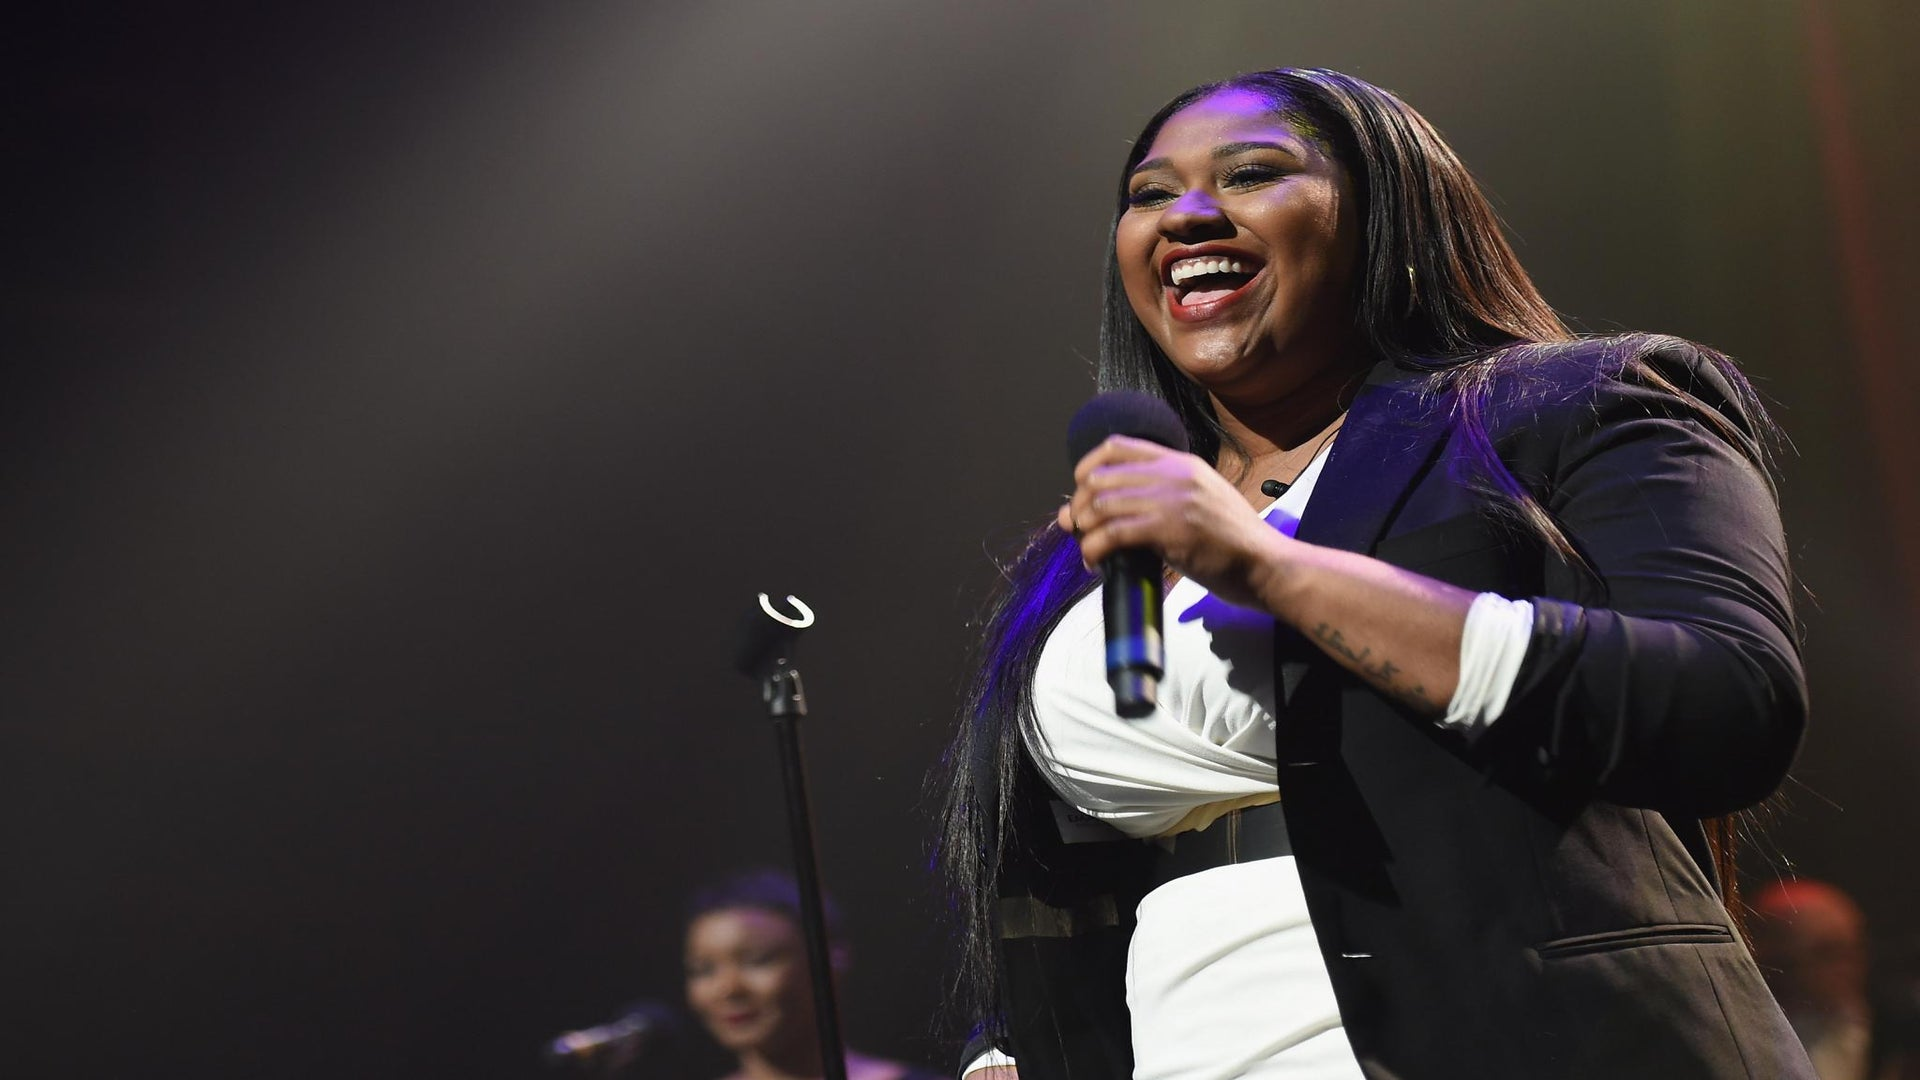 Jazmine Sullivan, V. Bozeman Tapped to Perform at Upcoming Soul Train Awards